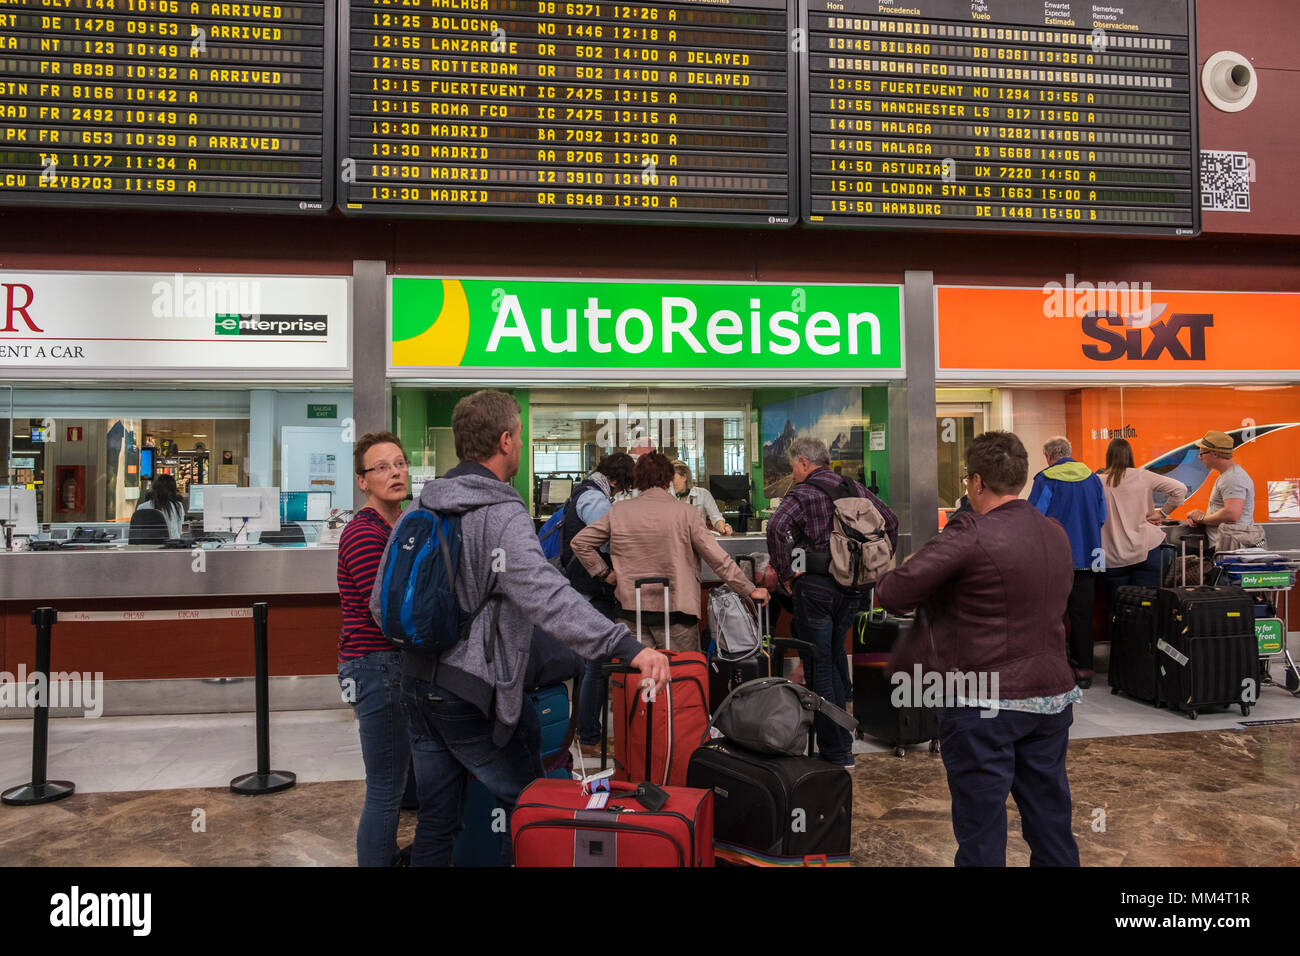 Sixt Rent a Car stands for exciting mobility and tailored solutions. We lead with innovation in the car rental sector.